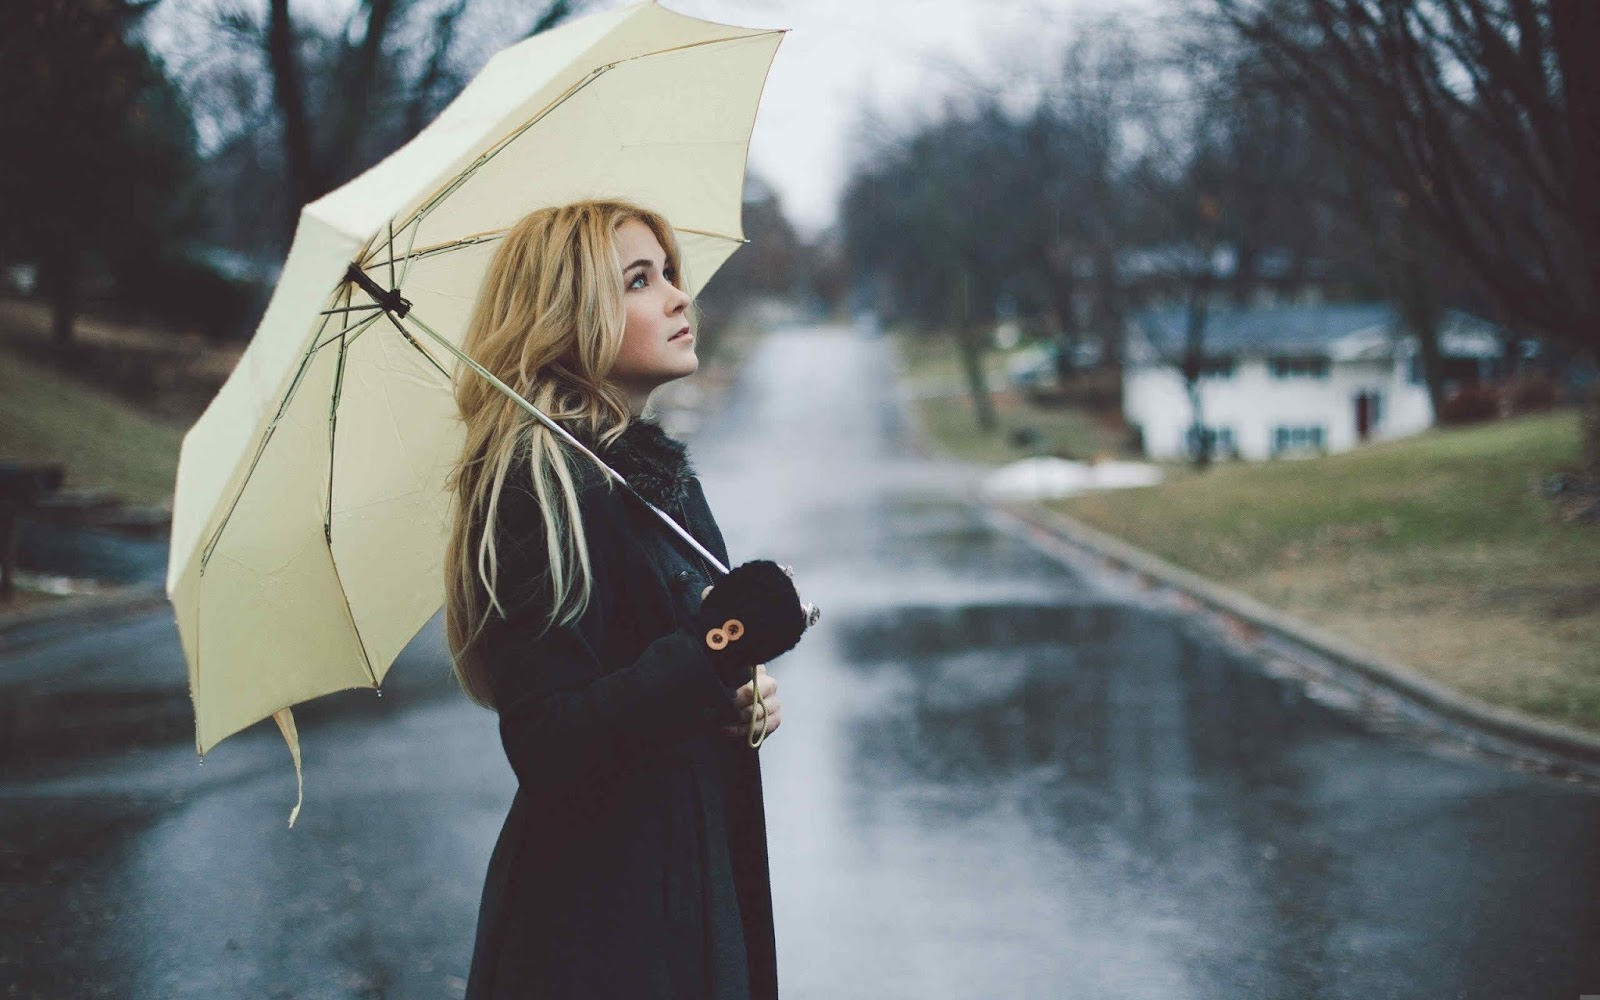 girl looking at rain whatsapp profile picture